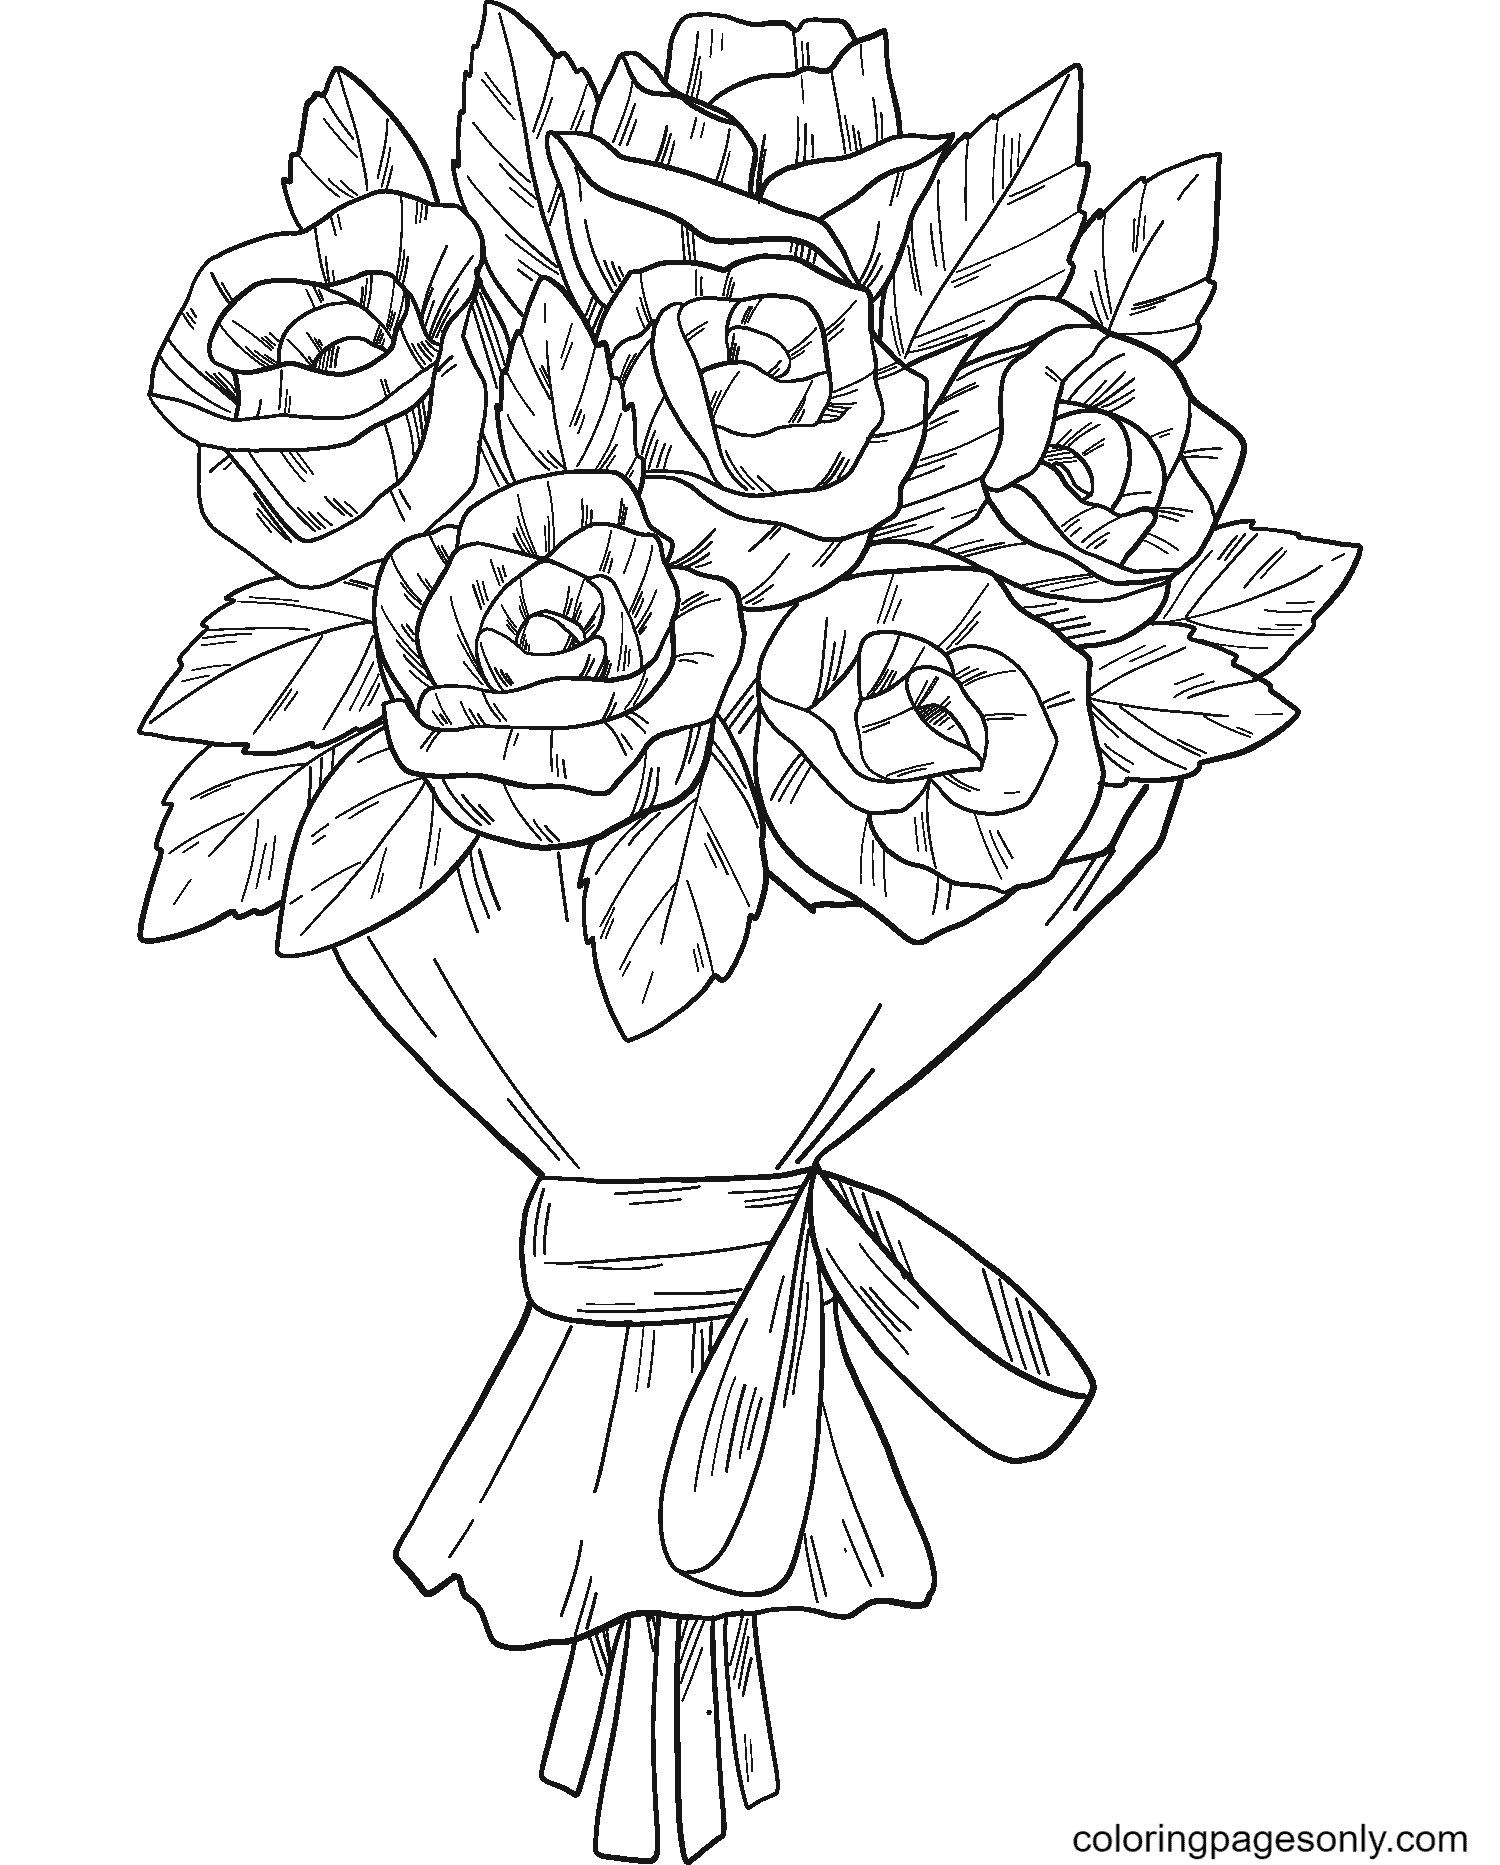 Bouquet of Roses Coloring Page